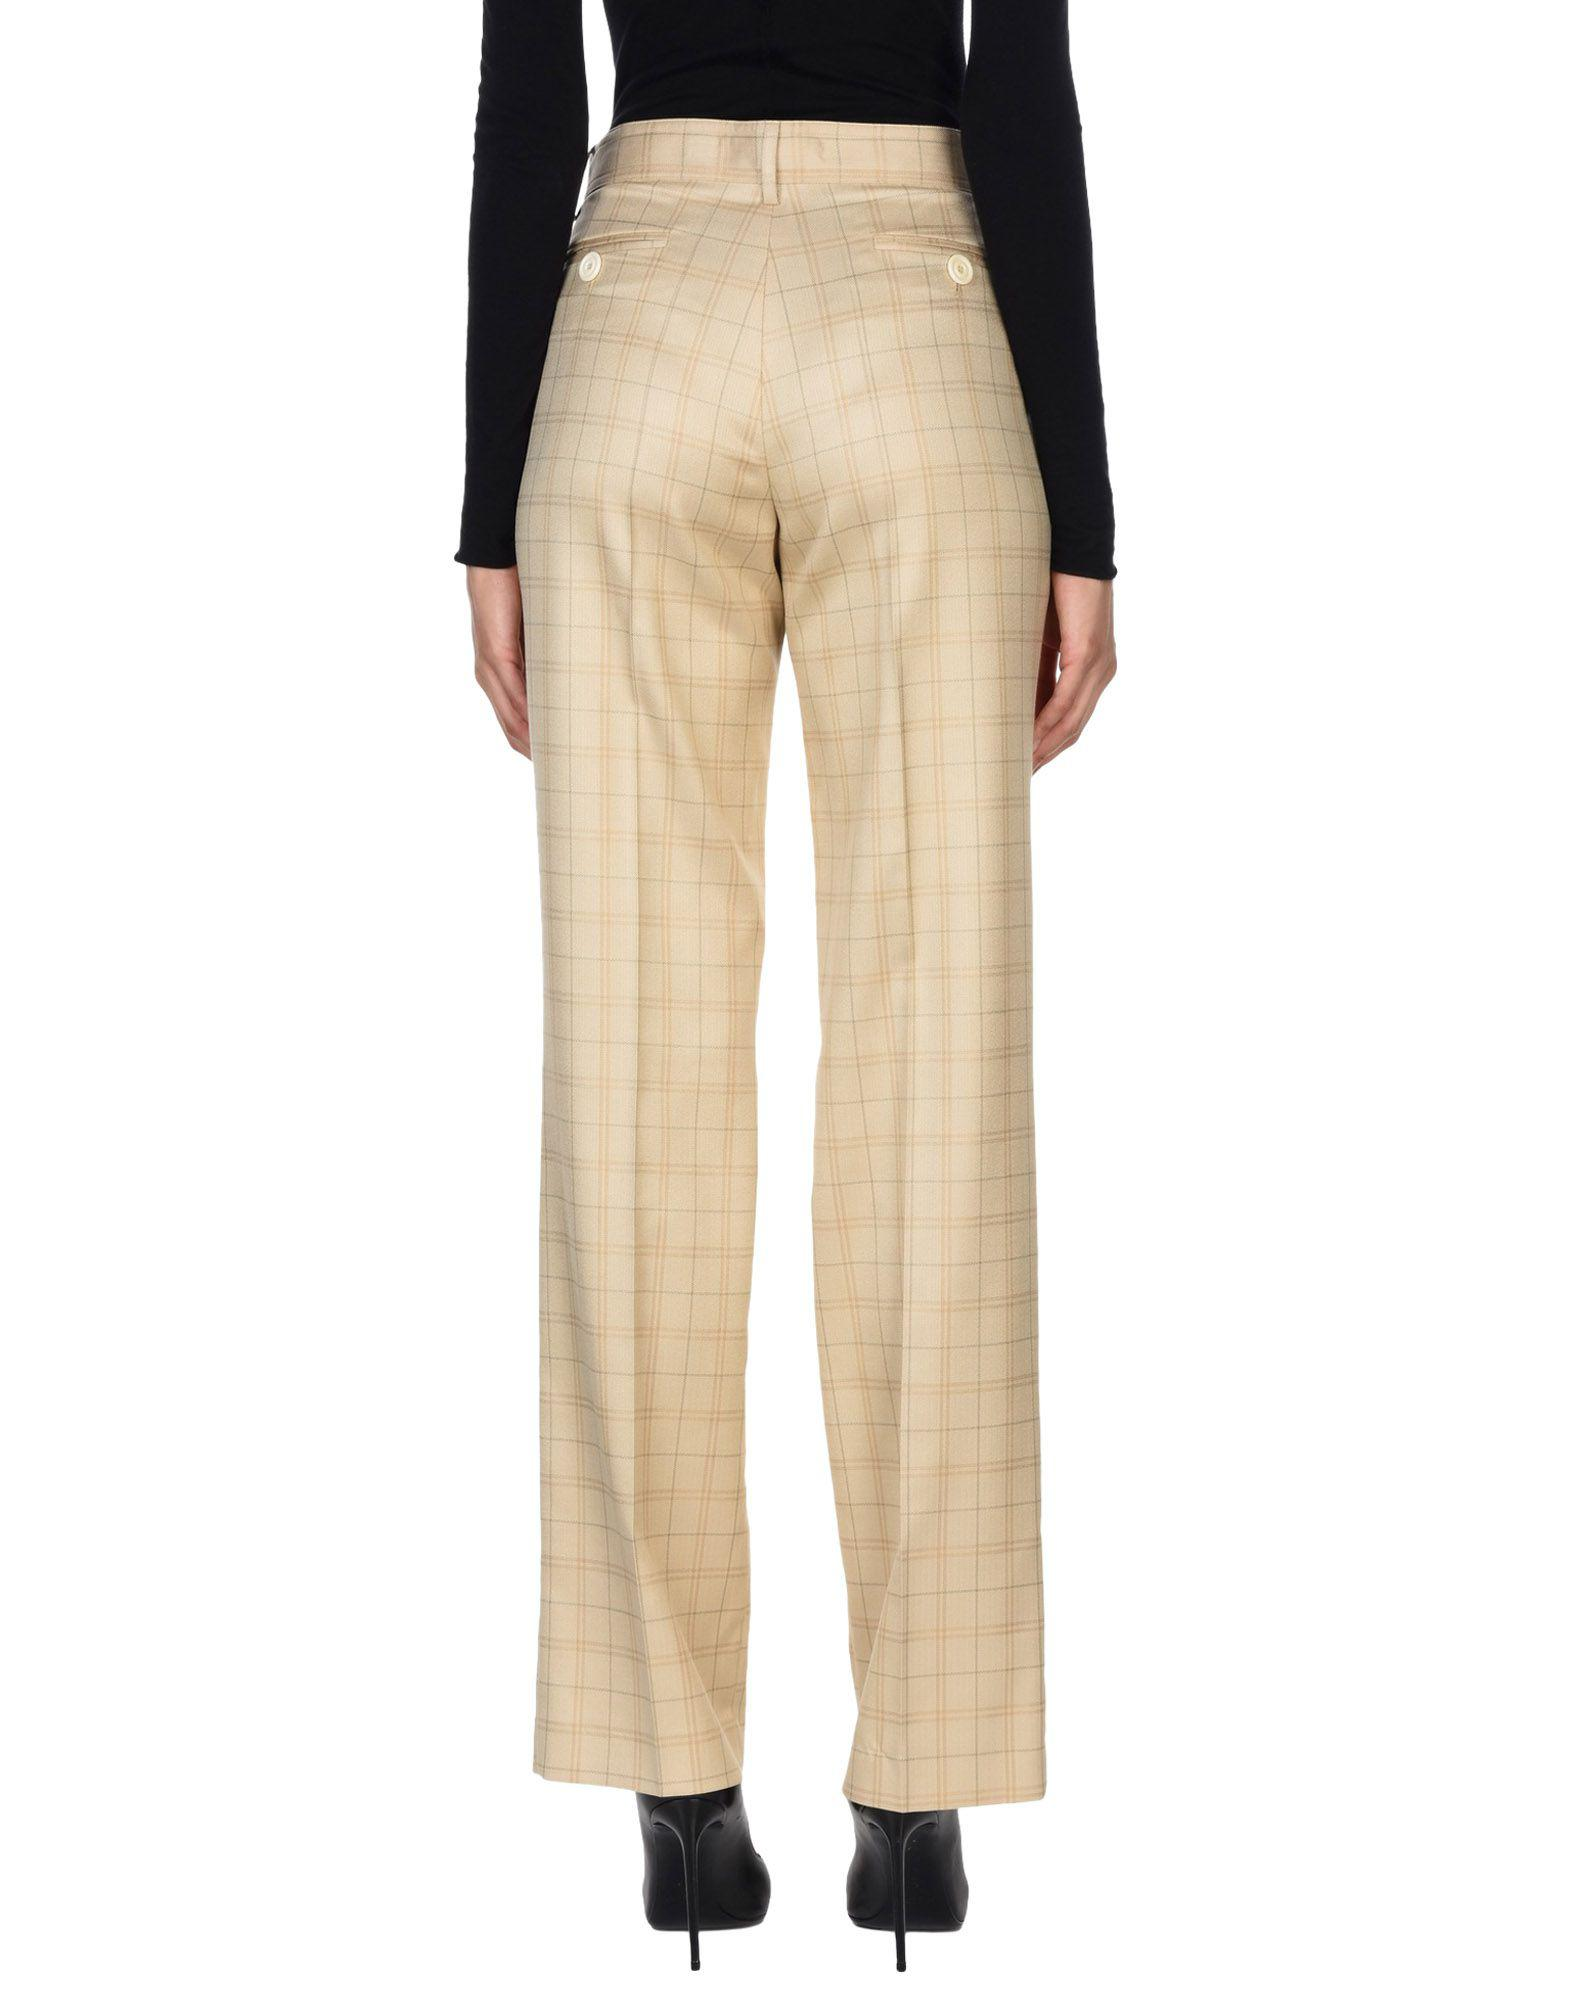 Clearance Best Place Outlet Fashion Style TROUSERS - Casual trousers Christian Lacroix Limit Discount Cheap Sale Low Shipping bbWKTjDt